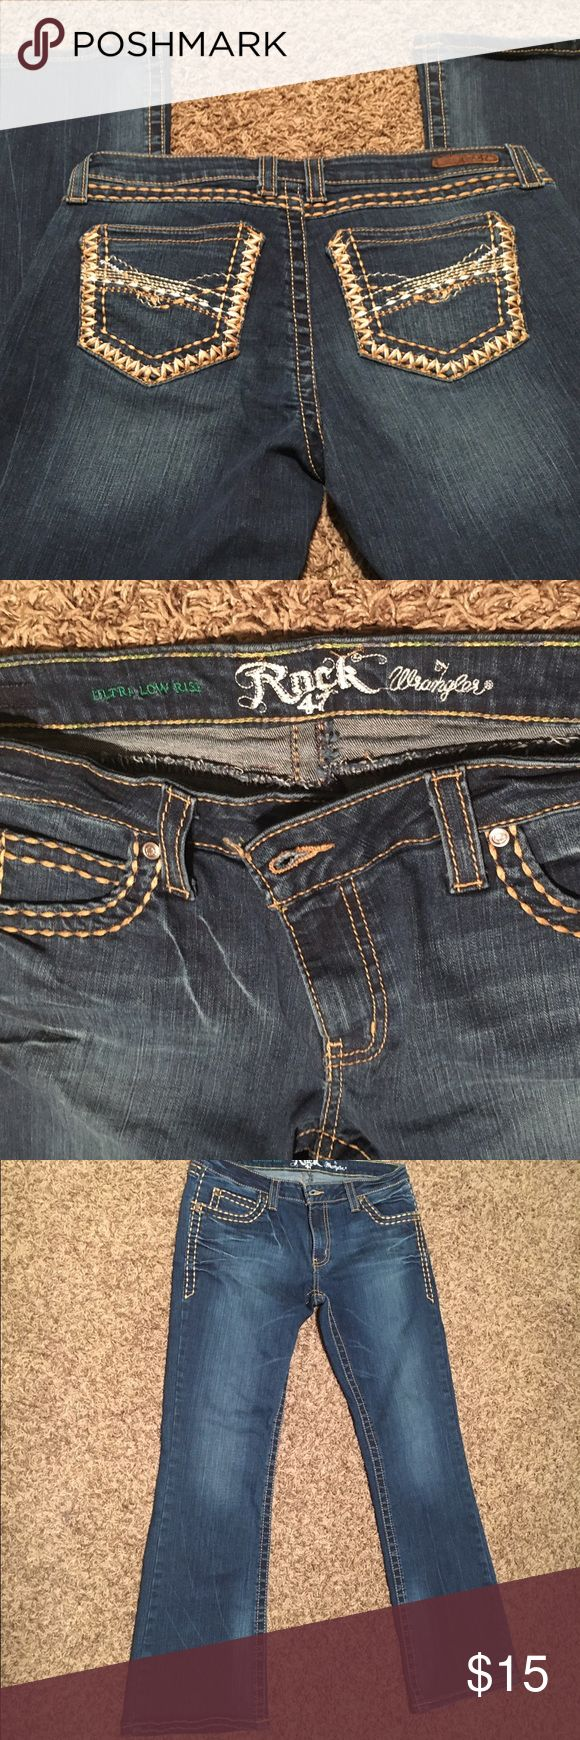 Women's Wrangler Rock 47 jeans size 30 Women's Wrangler Rock 47 jeans. This personally frustrates me when shopping online, so I am so sorry, but the tag was cut from these from irritation. So my measurements are as follows: 17in waist, 8in rise, 30in inseam. Excellent condition, smoke free home! Wrangler Jeans Boot Cut